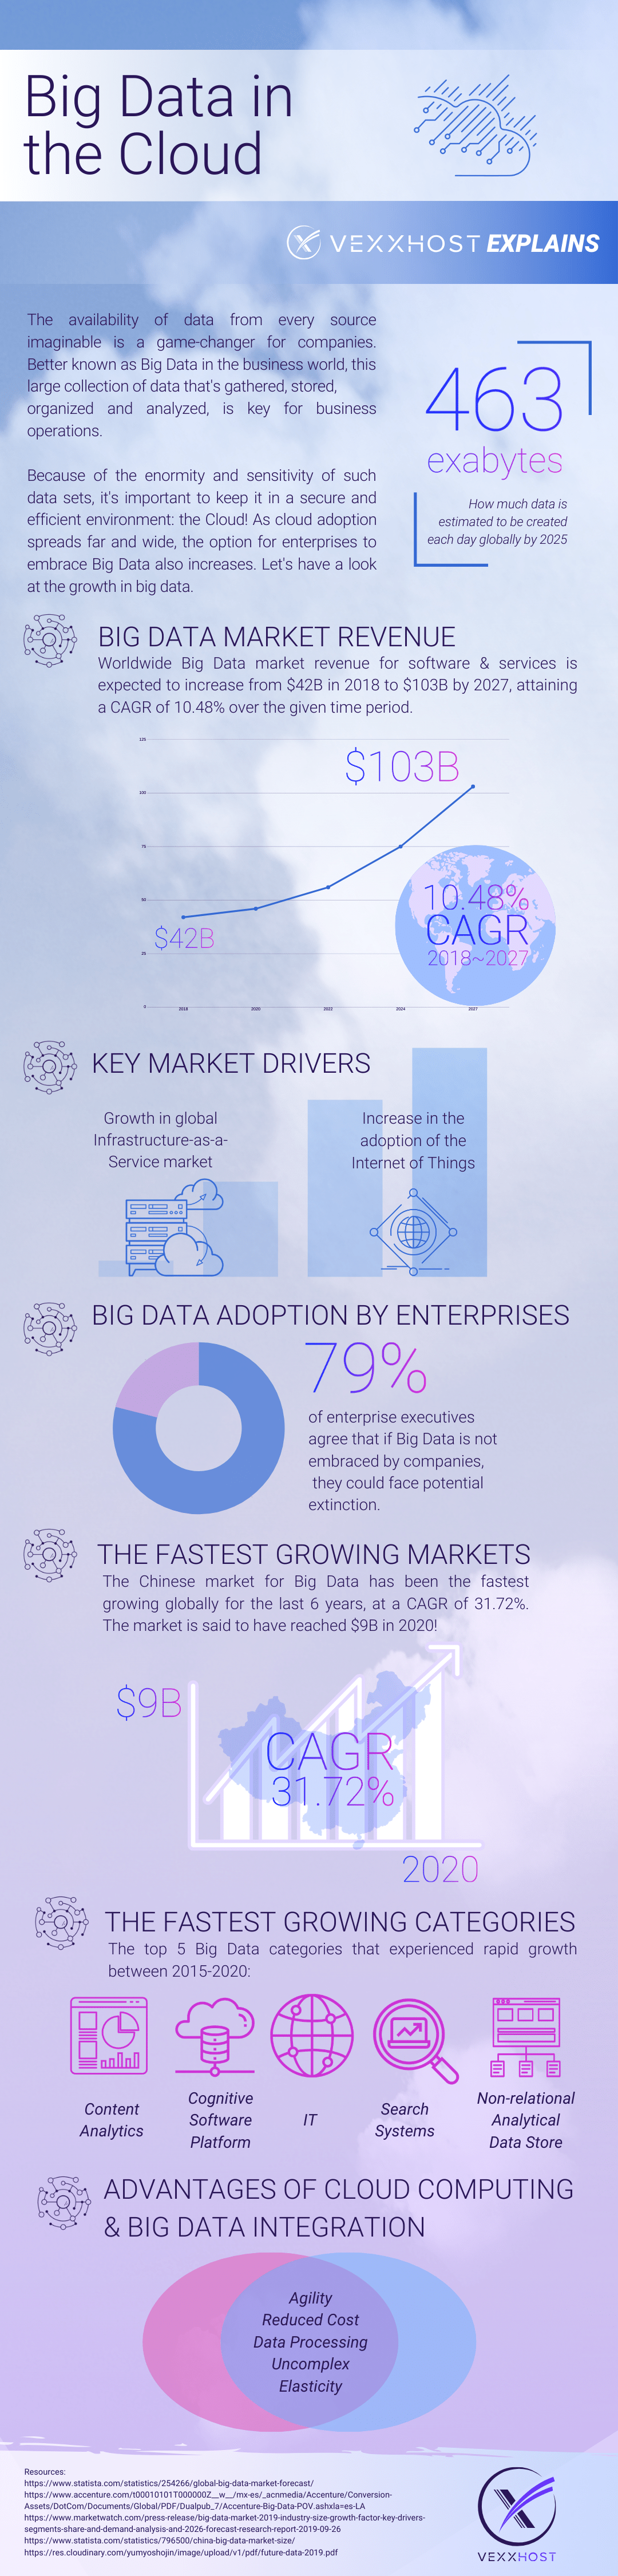 Infographic: Big Data in the Cloud